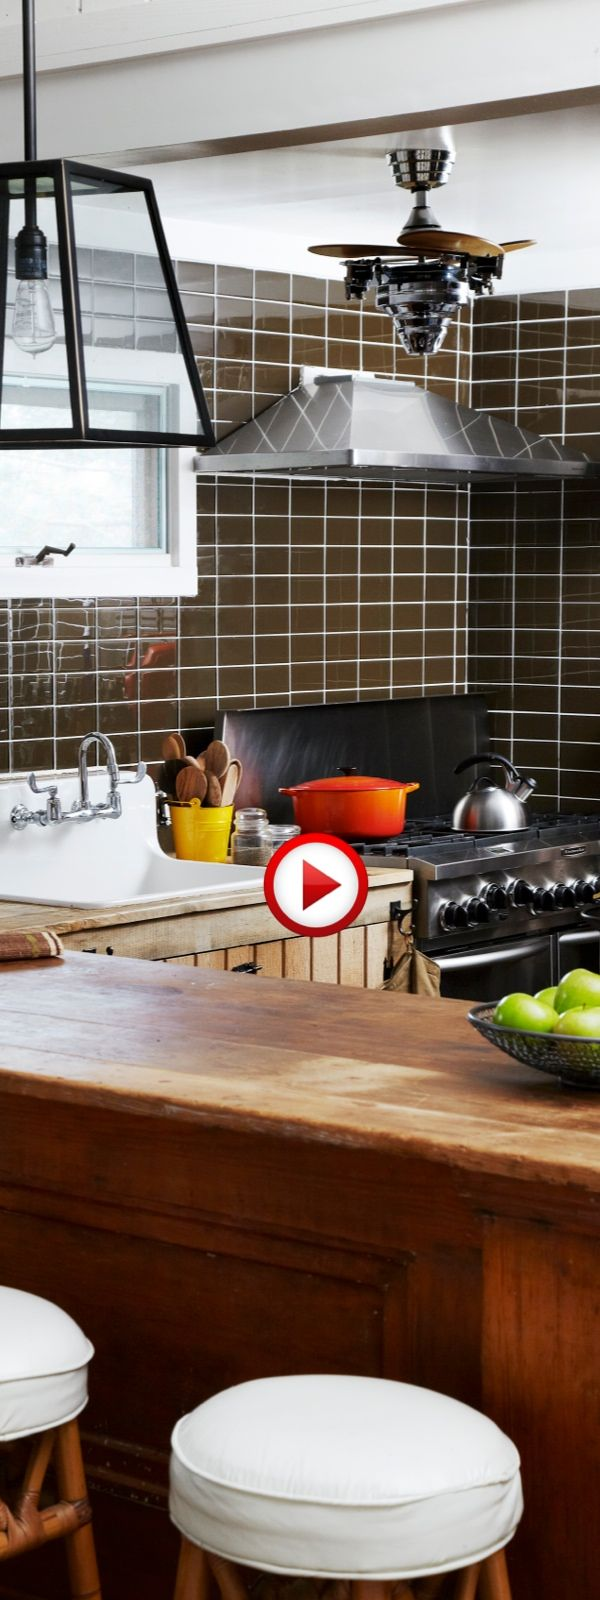 Feng Shui Kitchen Paint Colors Pictures Ideas From Hgtv: Get Good Kitchen Feng Shui Video #FengShui, #cooking